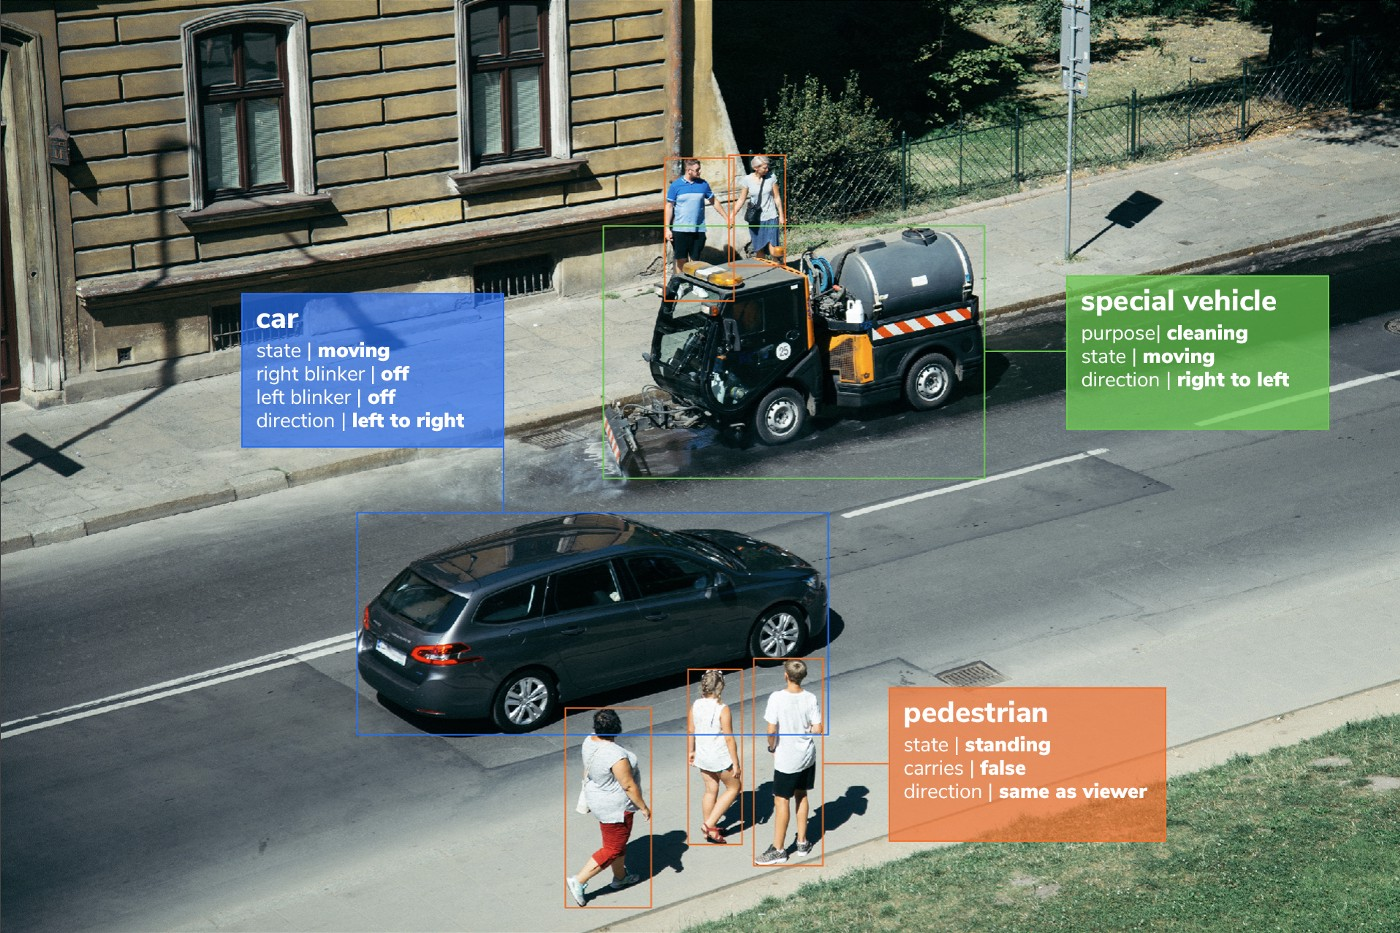 Teaching a self-driving AI to see, analyze and act. A case study.